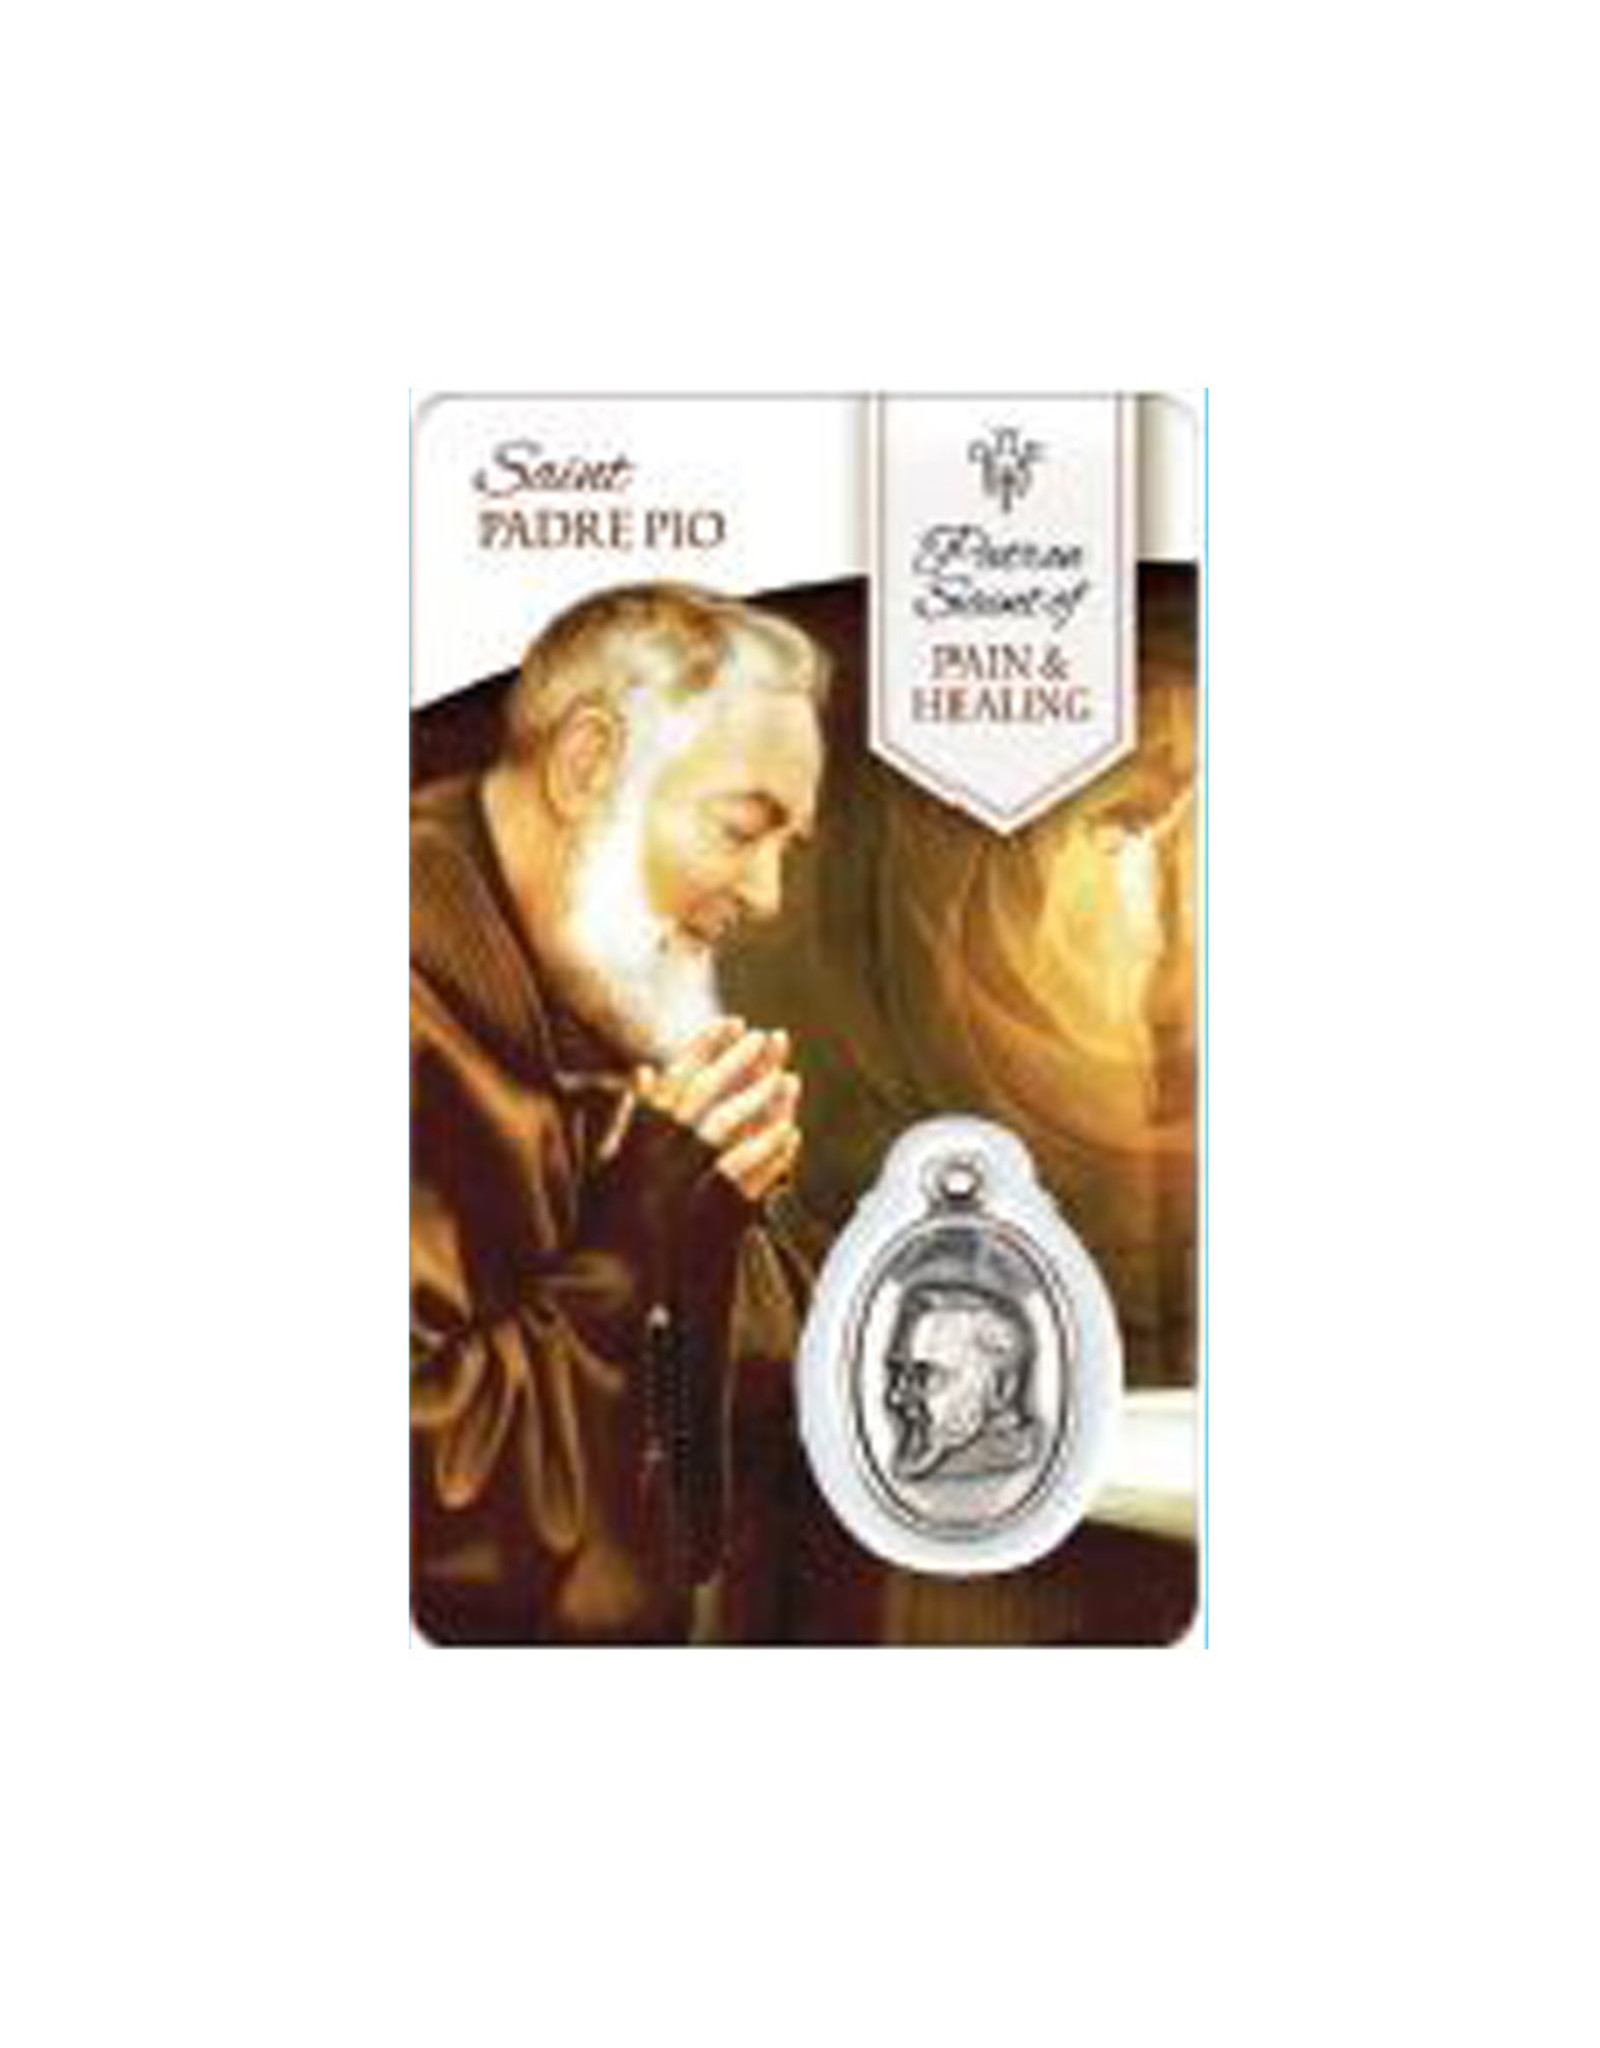 Medal Card of Saint Padre Pio